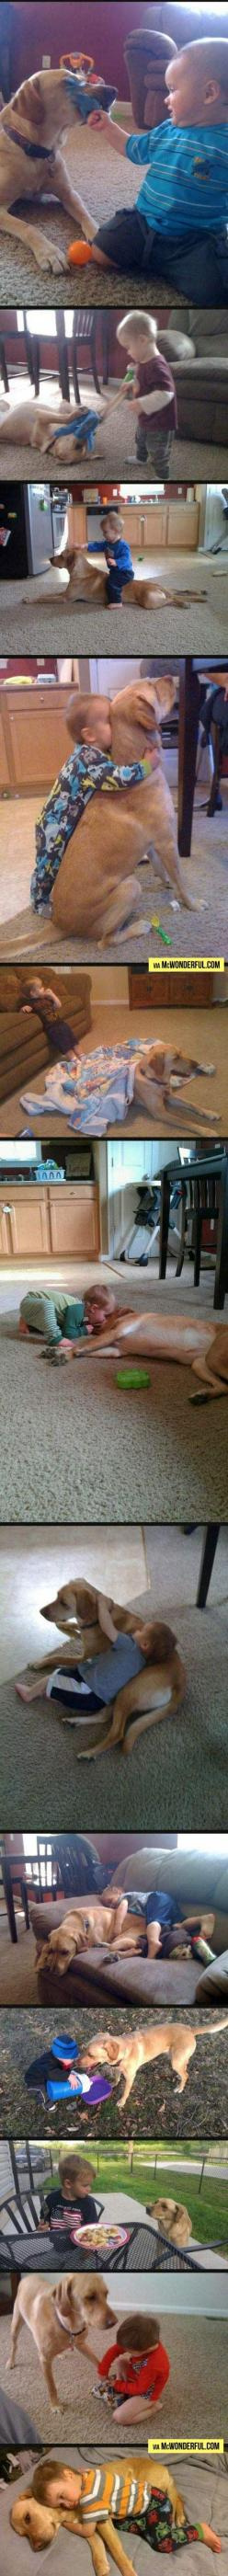 feels 2 of 2: Dogs Dogs, Animals Dogs, Pets, Cute Kids, Kids Animal, Dogs Don T, Greatest Dog